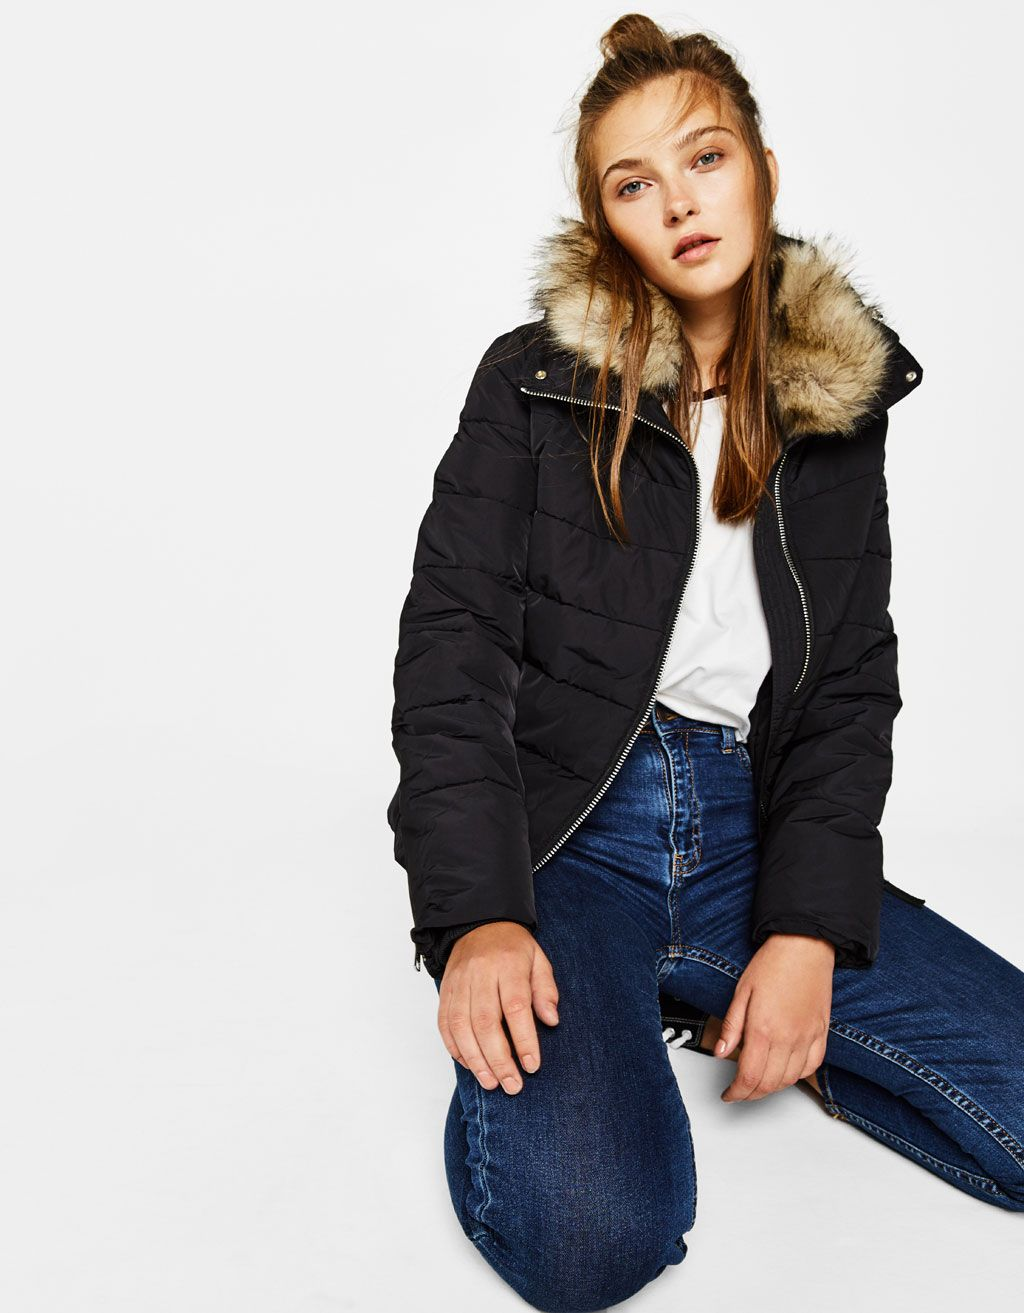 Puffer Jacket With Funnel Collar Coats Bershka United Kingdom Leather Jackets Women Jackets Clothes [ 1313 x 1024 Pixel ]